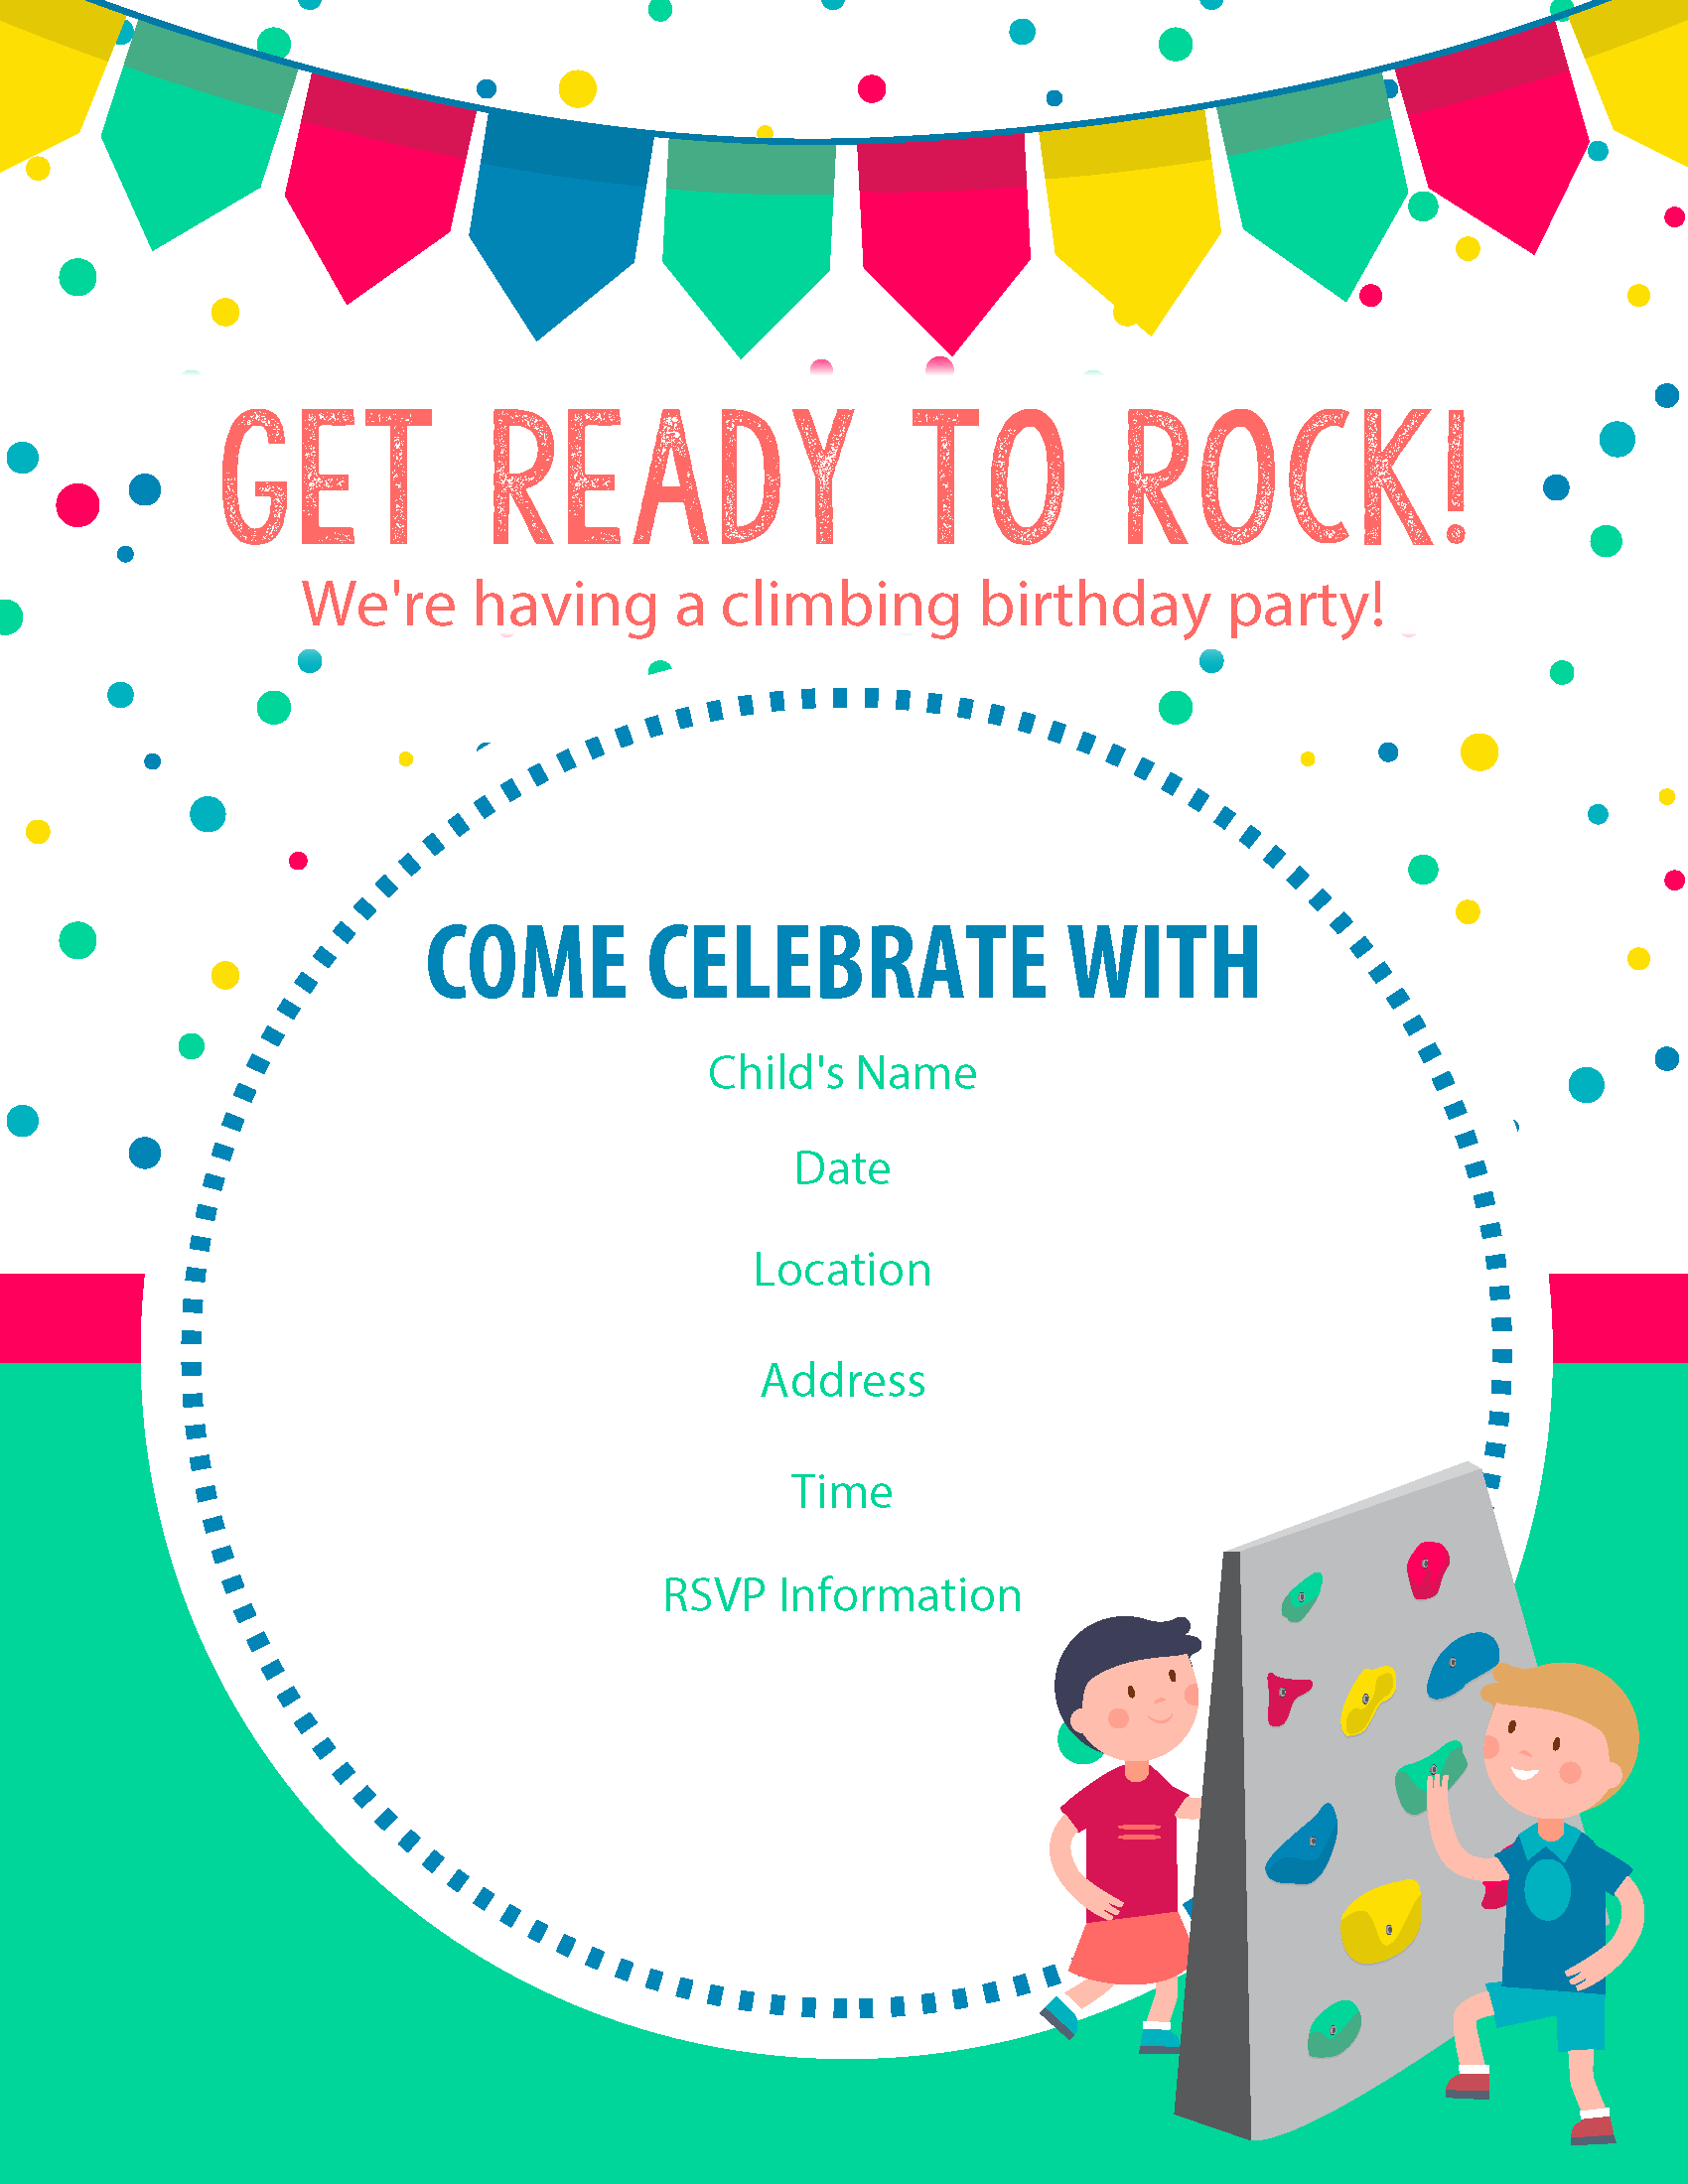 Happy birthday free rock climbing birthday party invitations one of our free rock climbing birthday party invitations filmwisefo